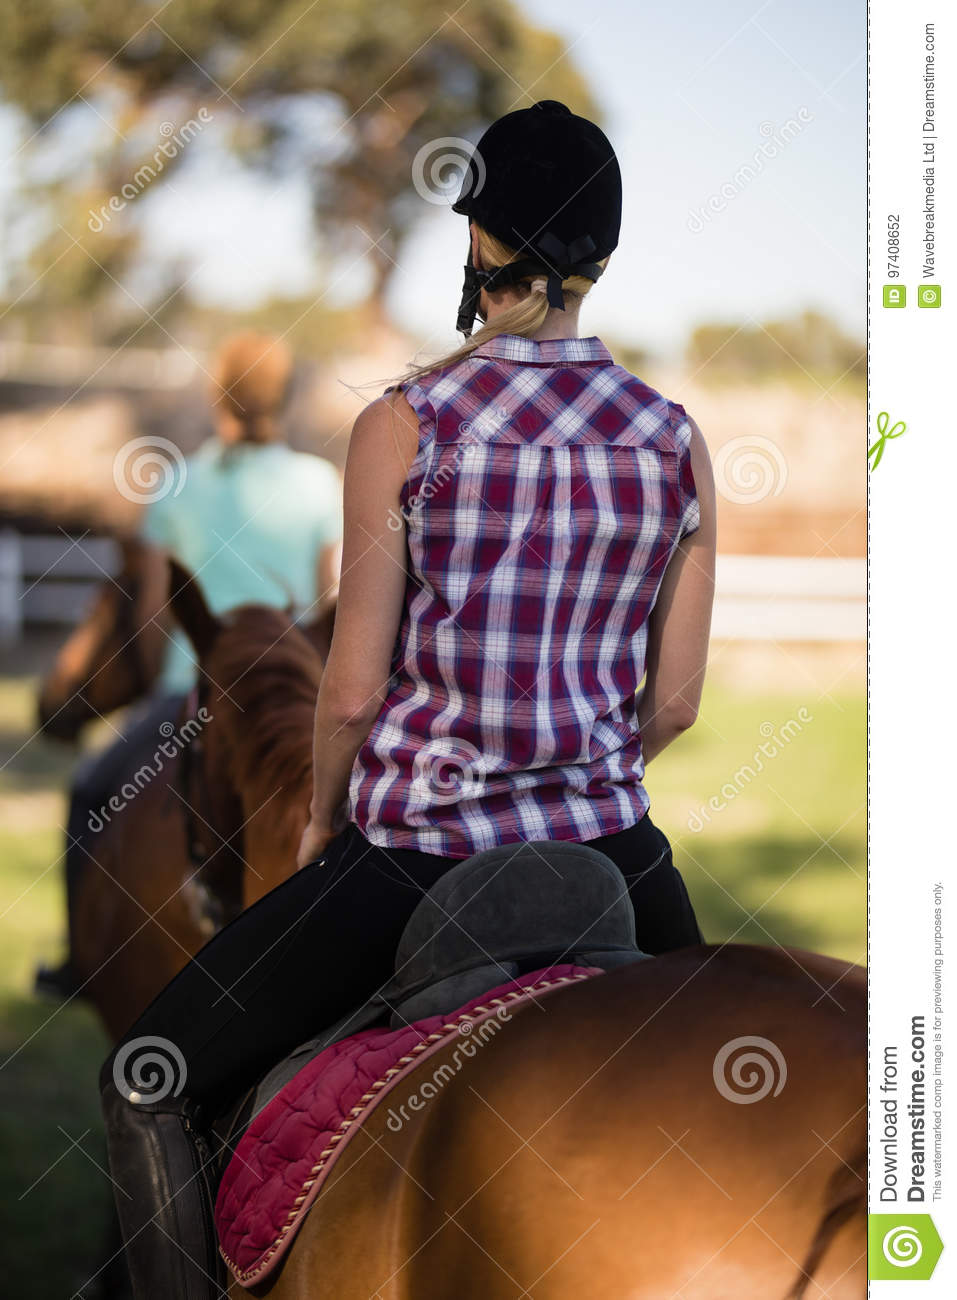 Rear view of woman horseback riding with friend sitting on horse in background